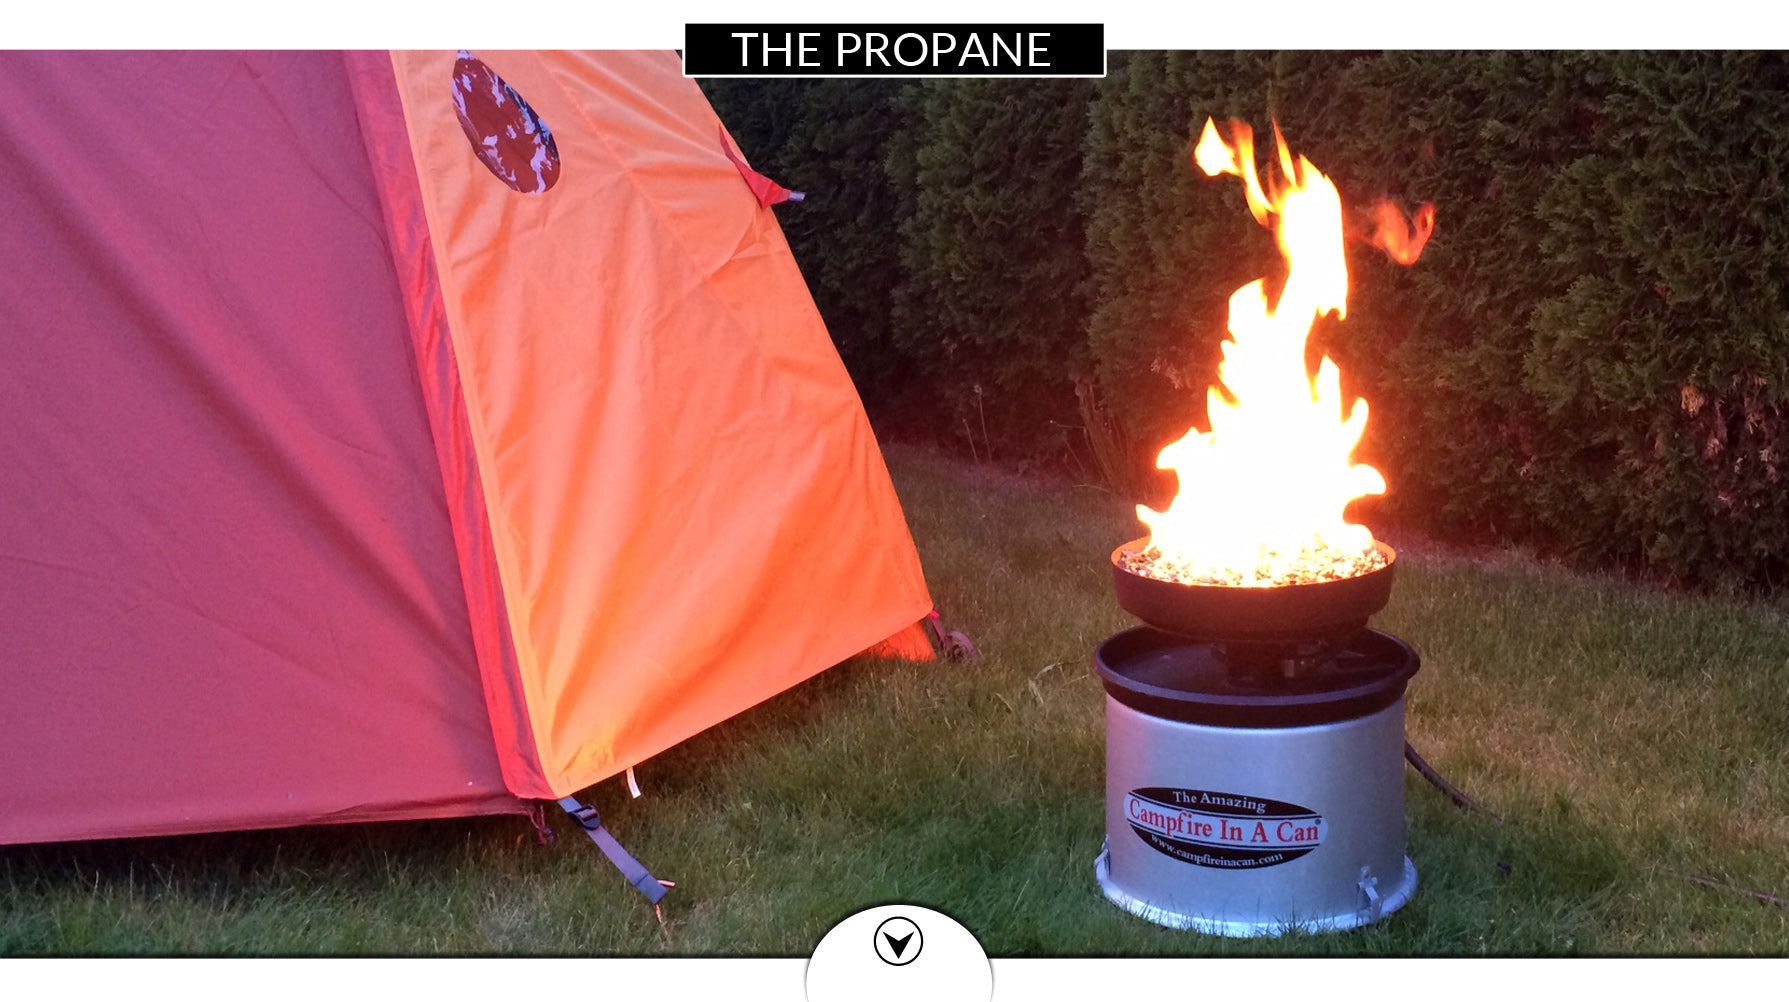 propane campfire in a can